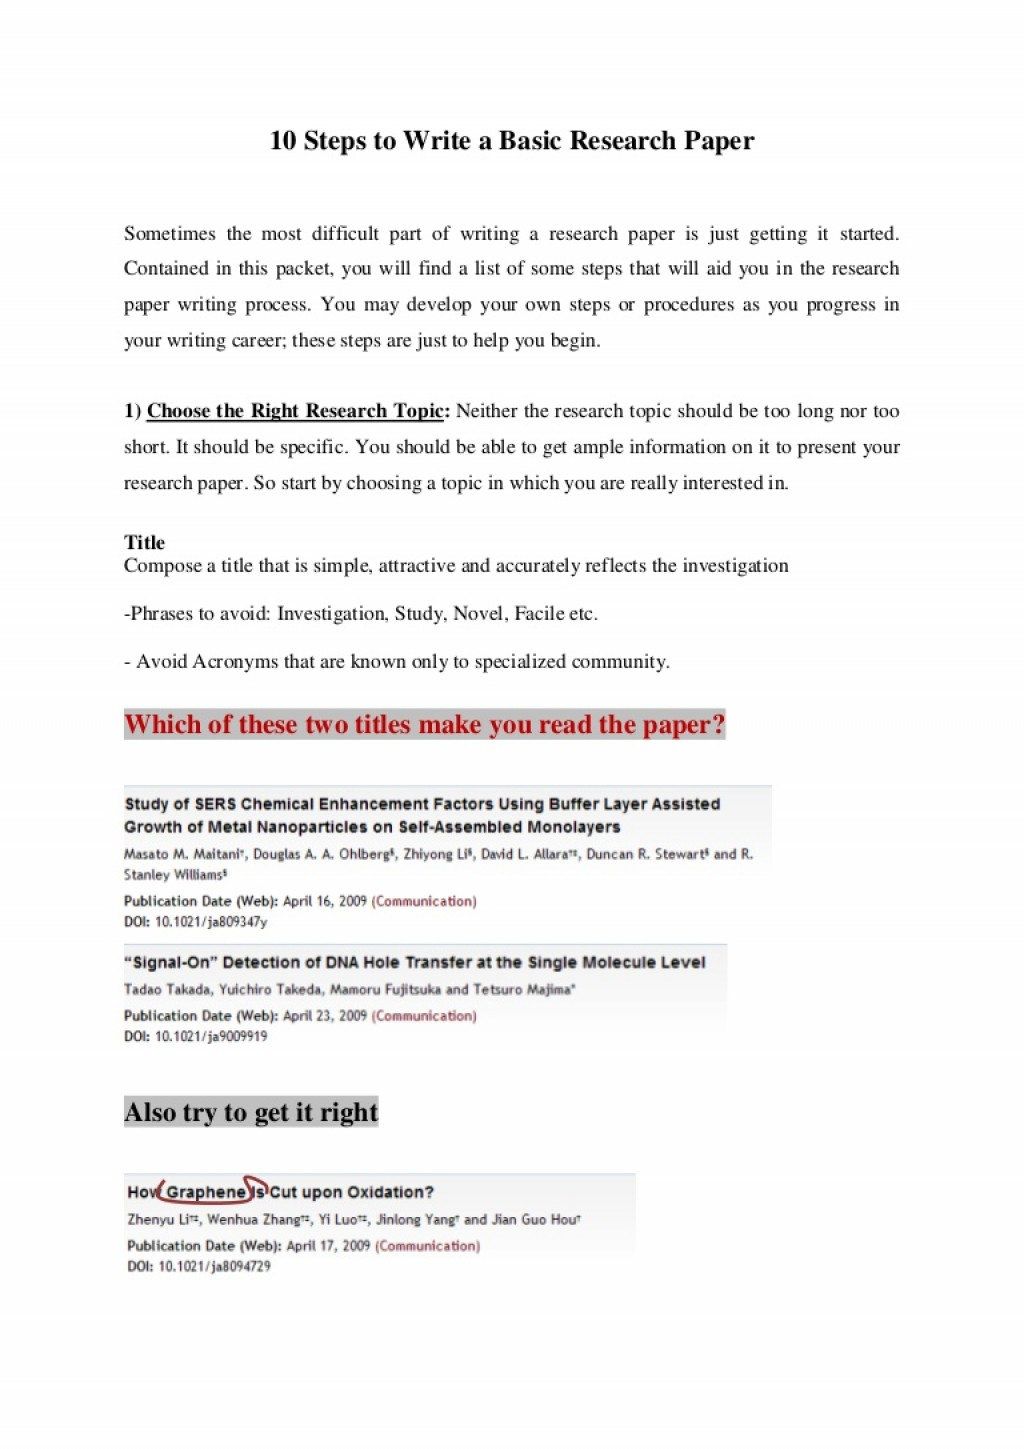 003 10stepstowriteabasicresearchpaper Thumbnail Research Paper Steps Frightening Writing 12 Ten For Papers To A 10 Page Large